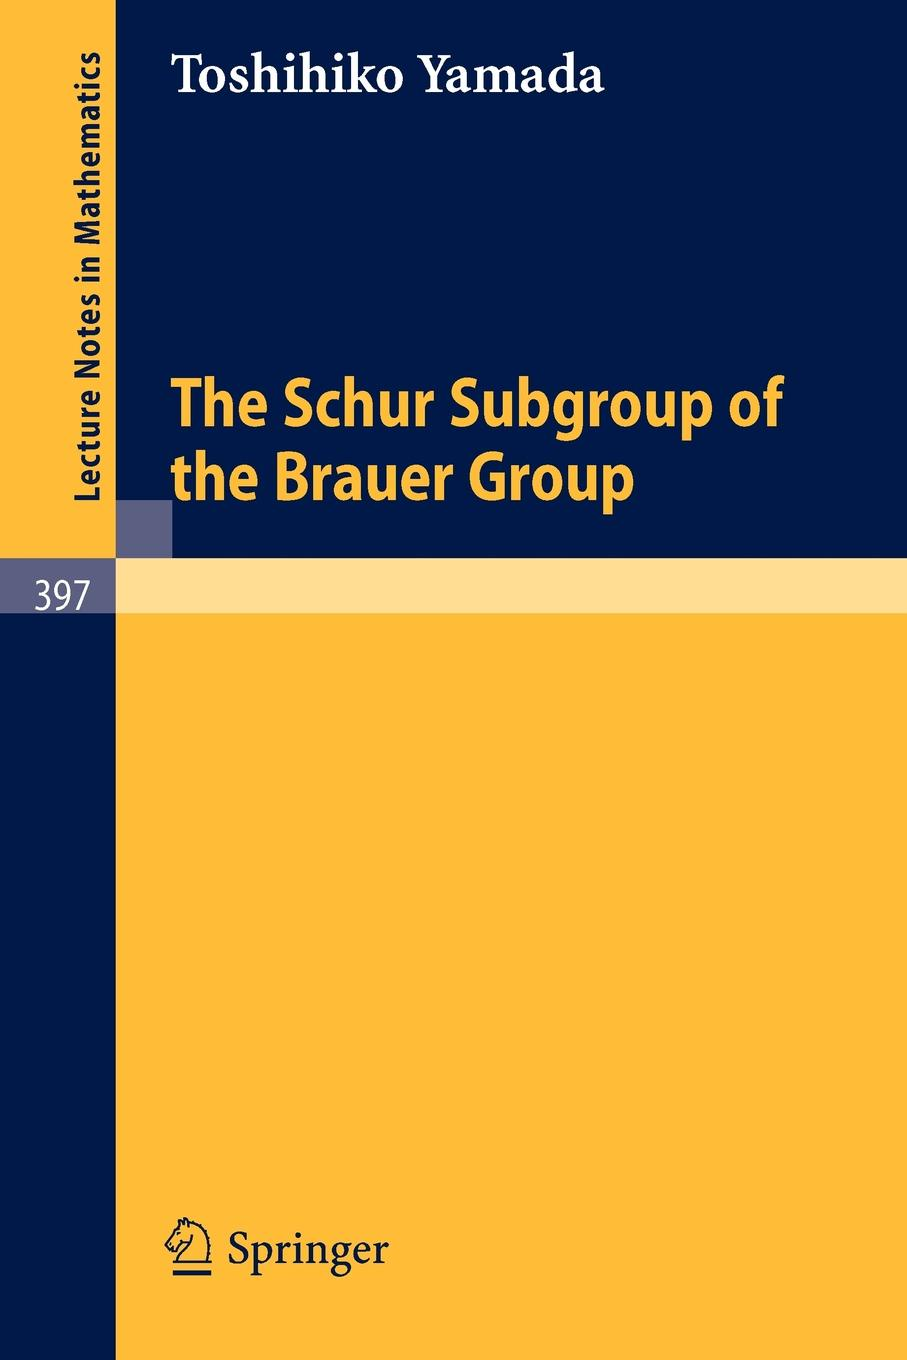 T. Yamada The Schur Subgroup of the Brauer Group